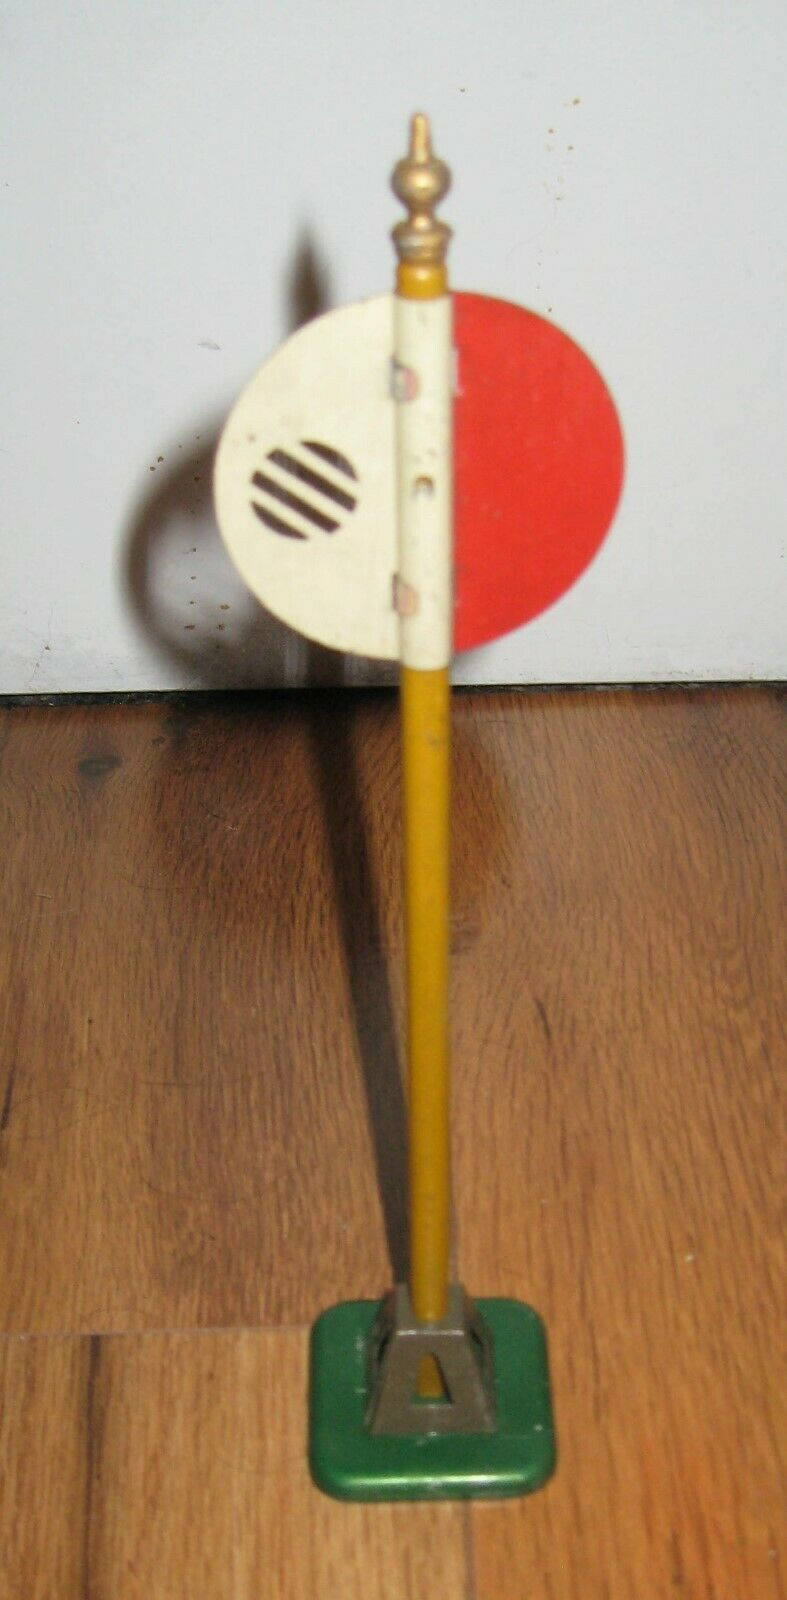 Antique Prewar Bing German Signal Marklin Station Bub Fandor Kibri Semaphore VTG